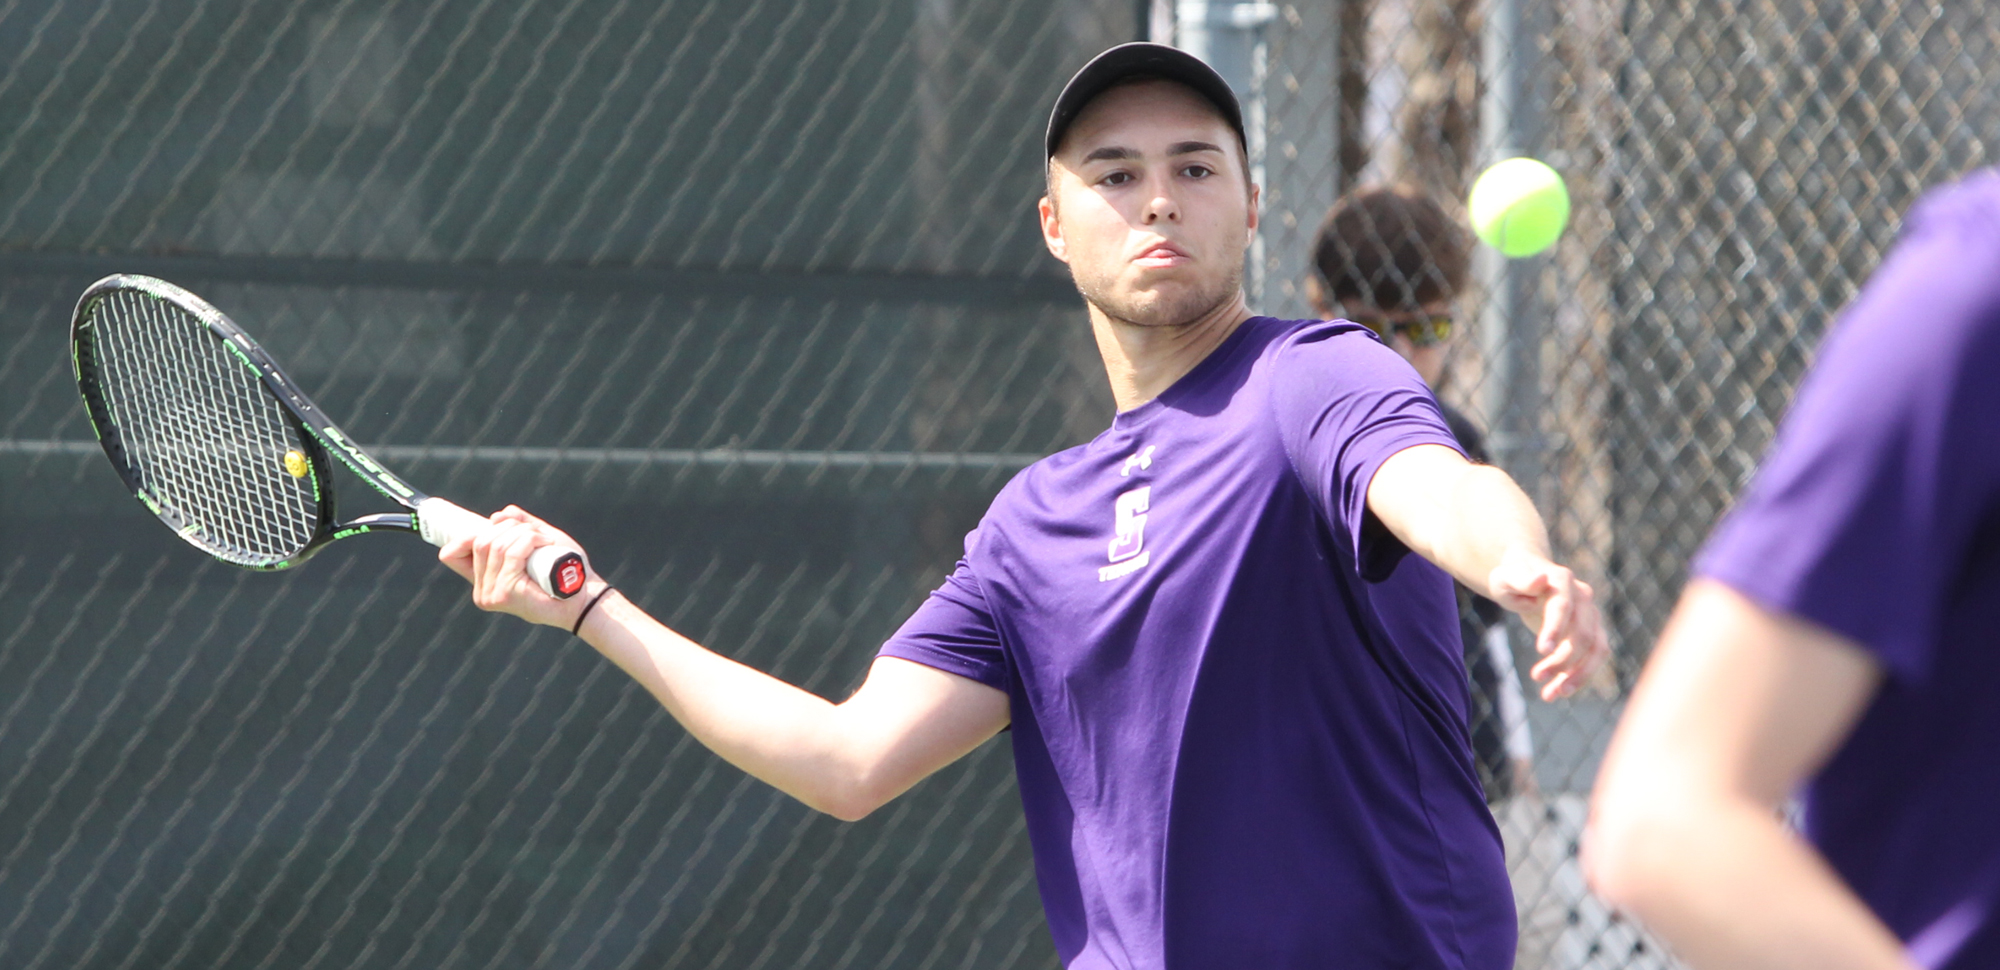 Graduate student Christian Aksu won at doubles in his final match at Scranton on Saturday vs. Goucher, as the Gophers won the Landmark title with a 5-1 win over the Royals. © Photo by Timothy R. Dougherty / doubleeaglephotography.com